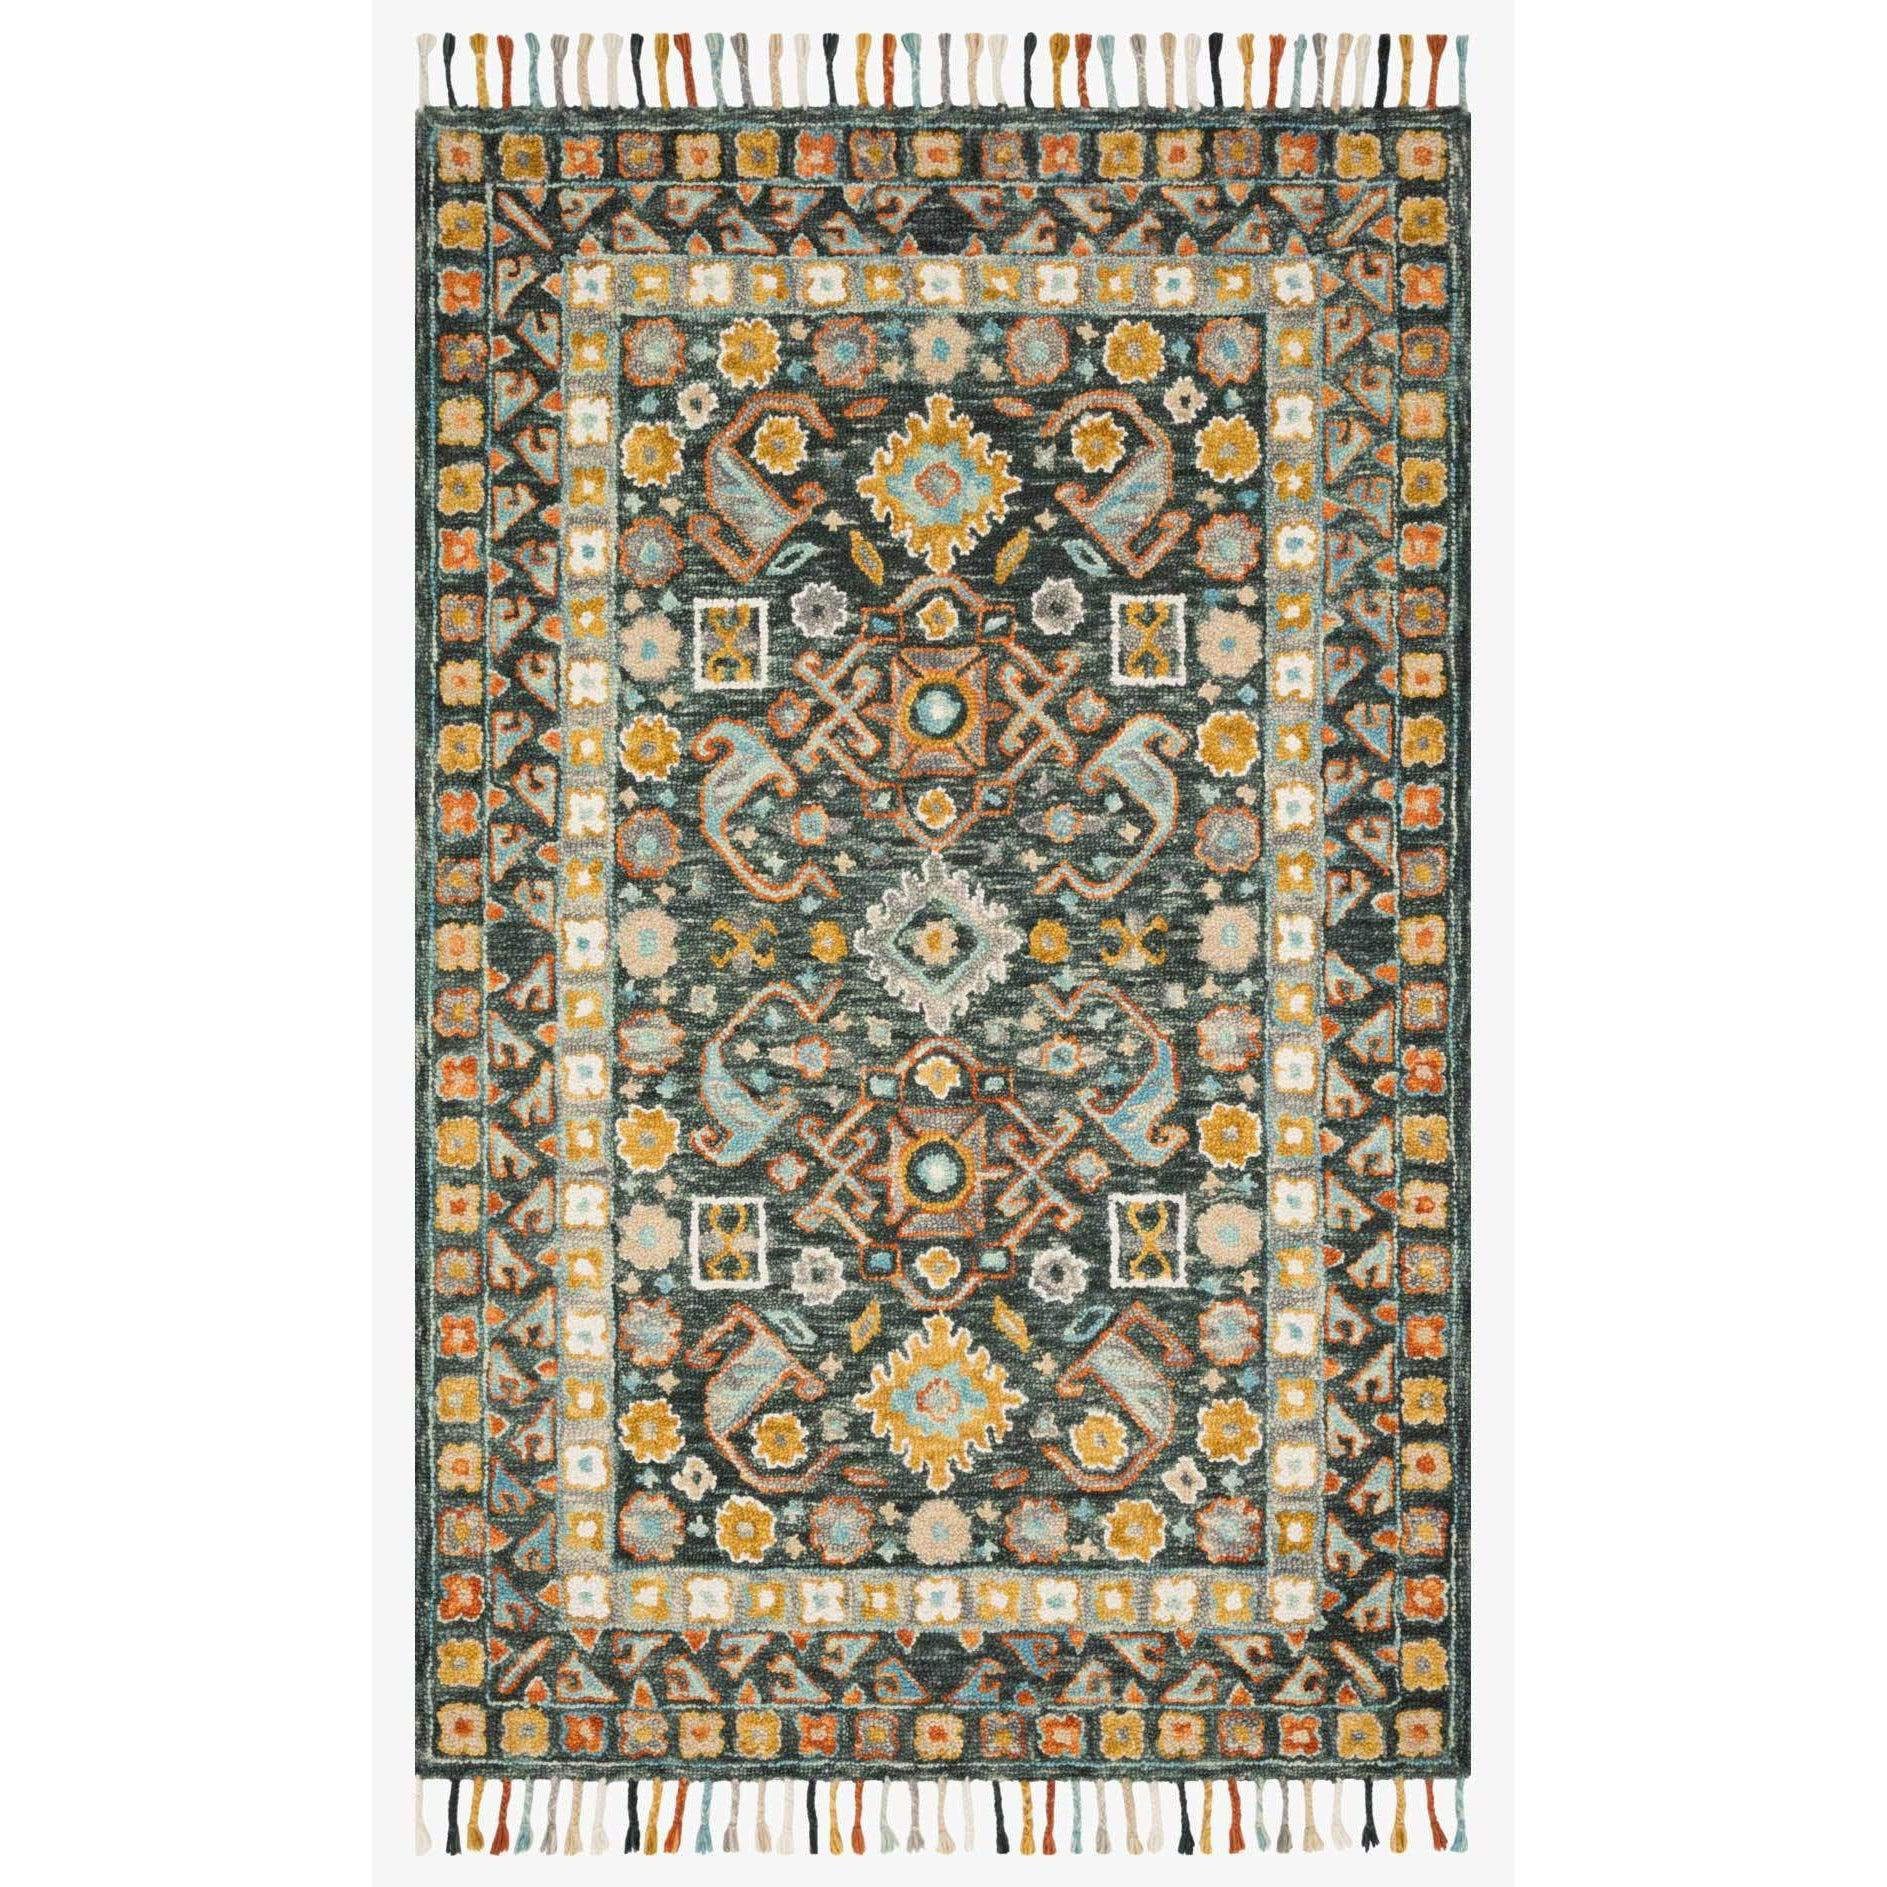 Elka Rug by Loloi Rugs - ELK-03 - Denim / Multi